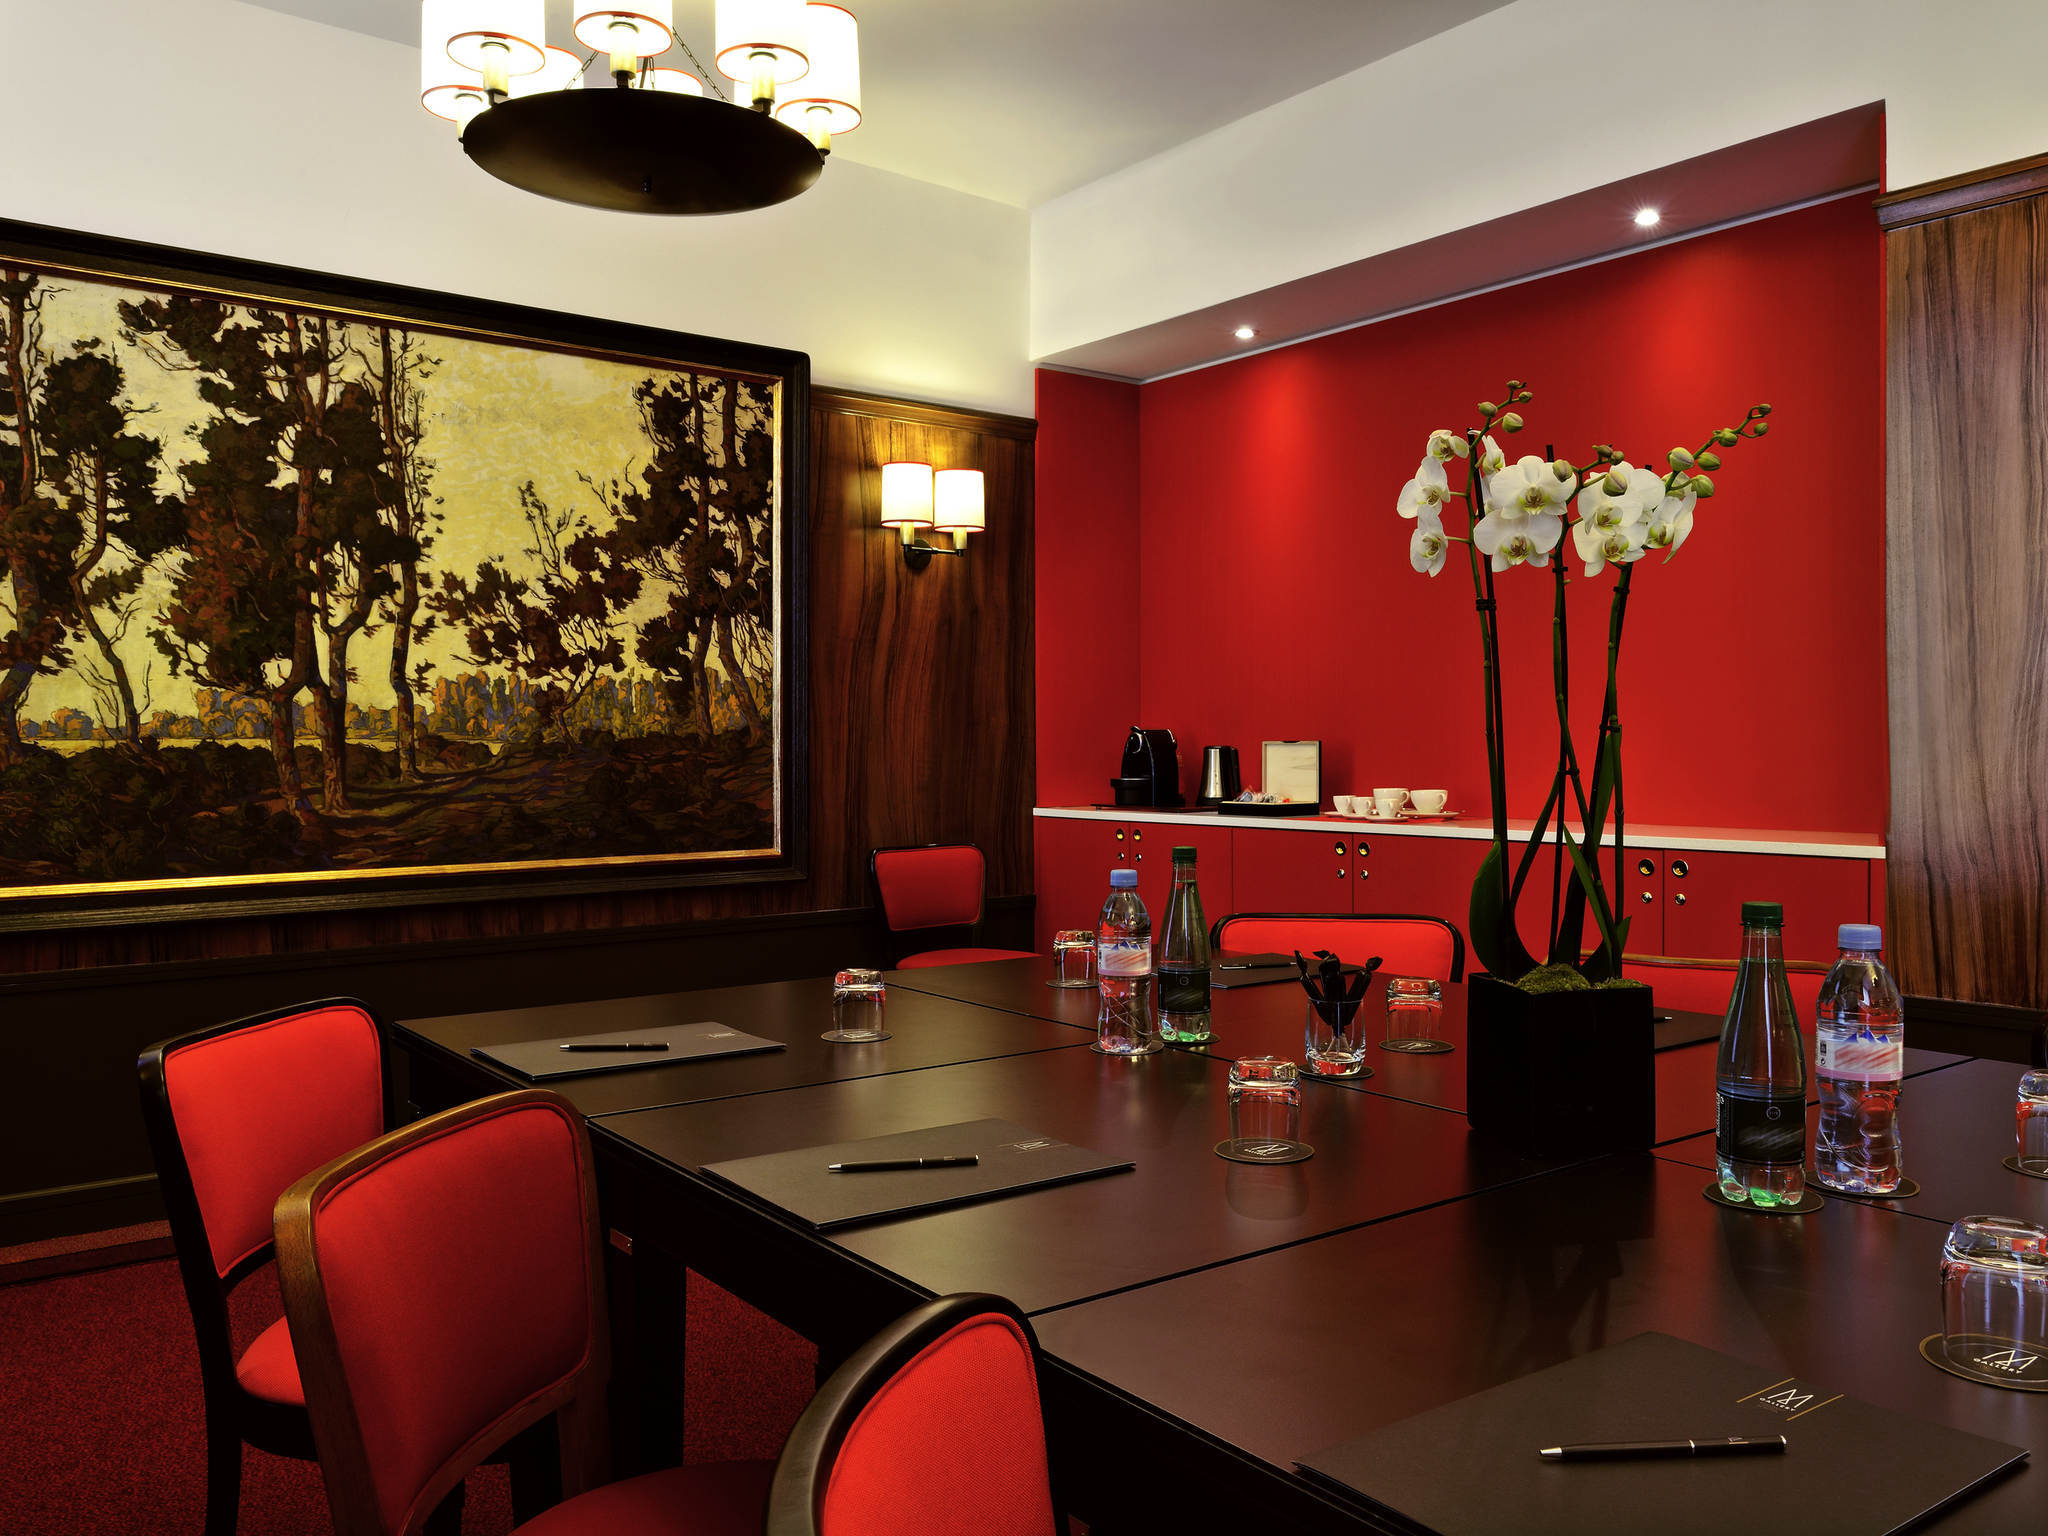 Image of Meeting Room Hôtel Carlton Lyon - MGallery by Sofitel, 1894, Member of Historic Hotels Worldwide, in Lyon, France, Request For Proposal